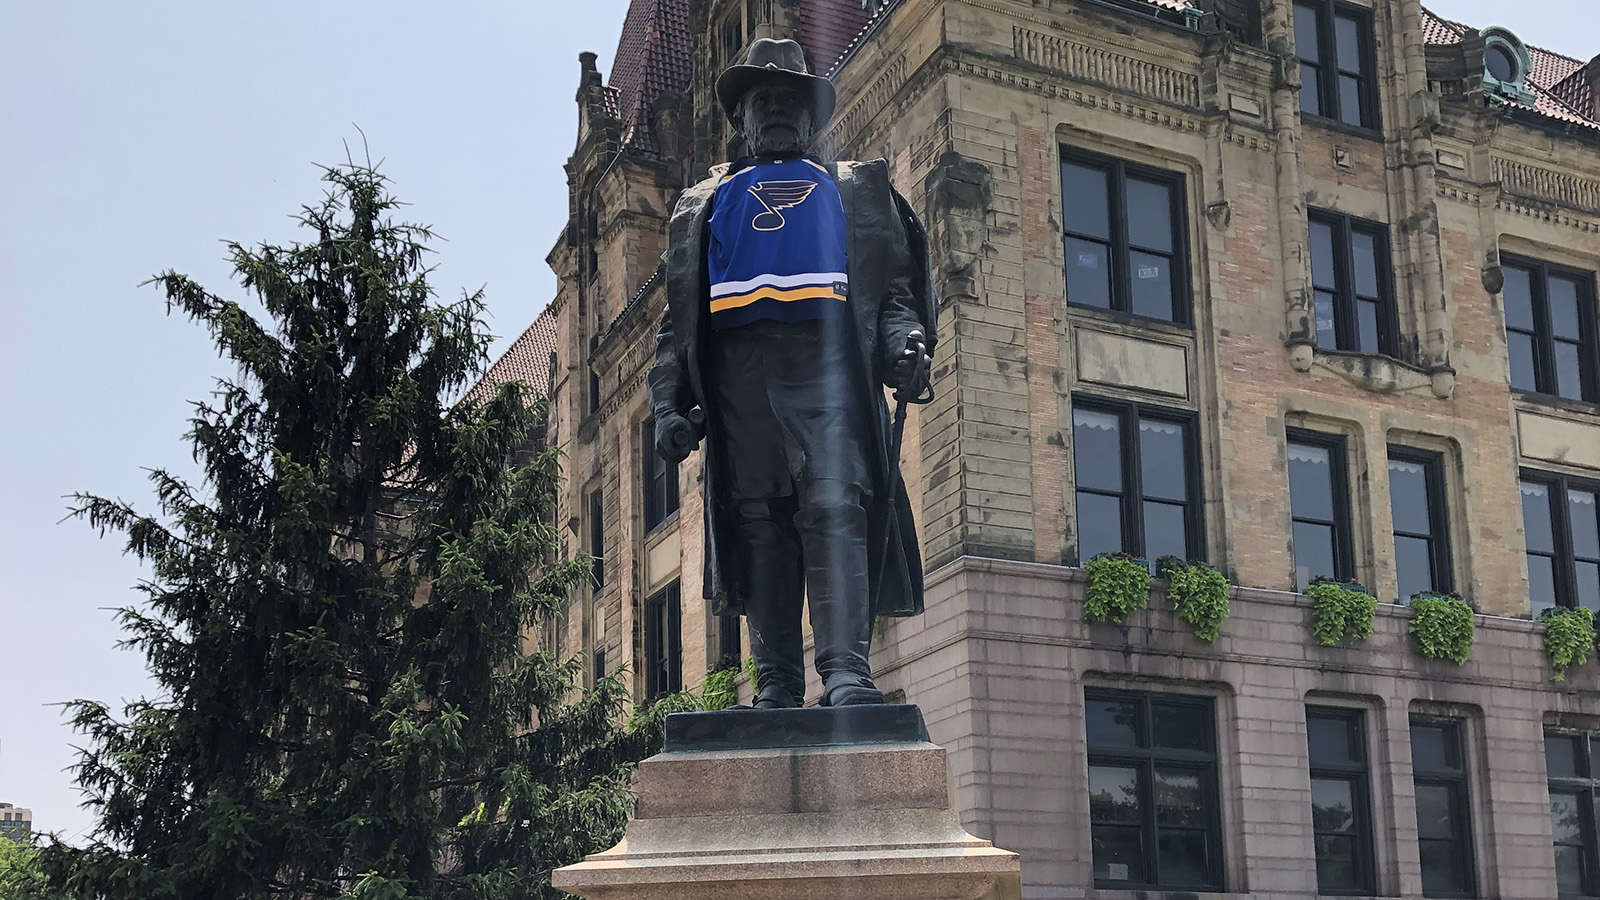 Stanley Cup Today: St. Louis Blues could use a lift from fans in Game 4